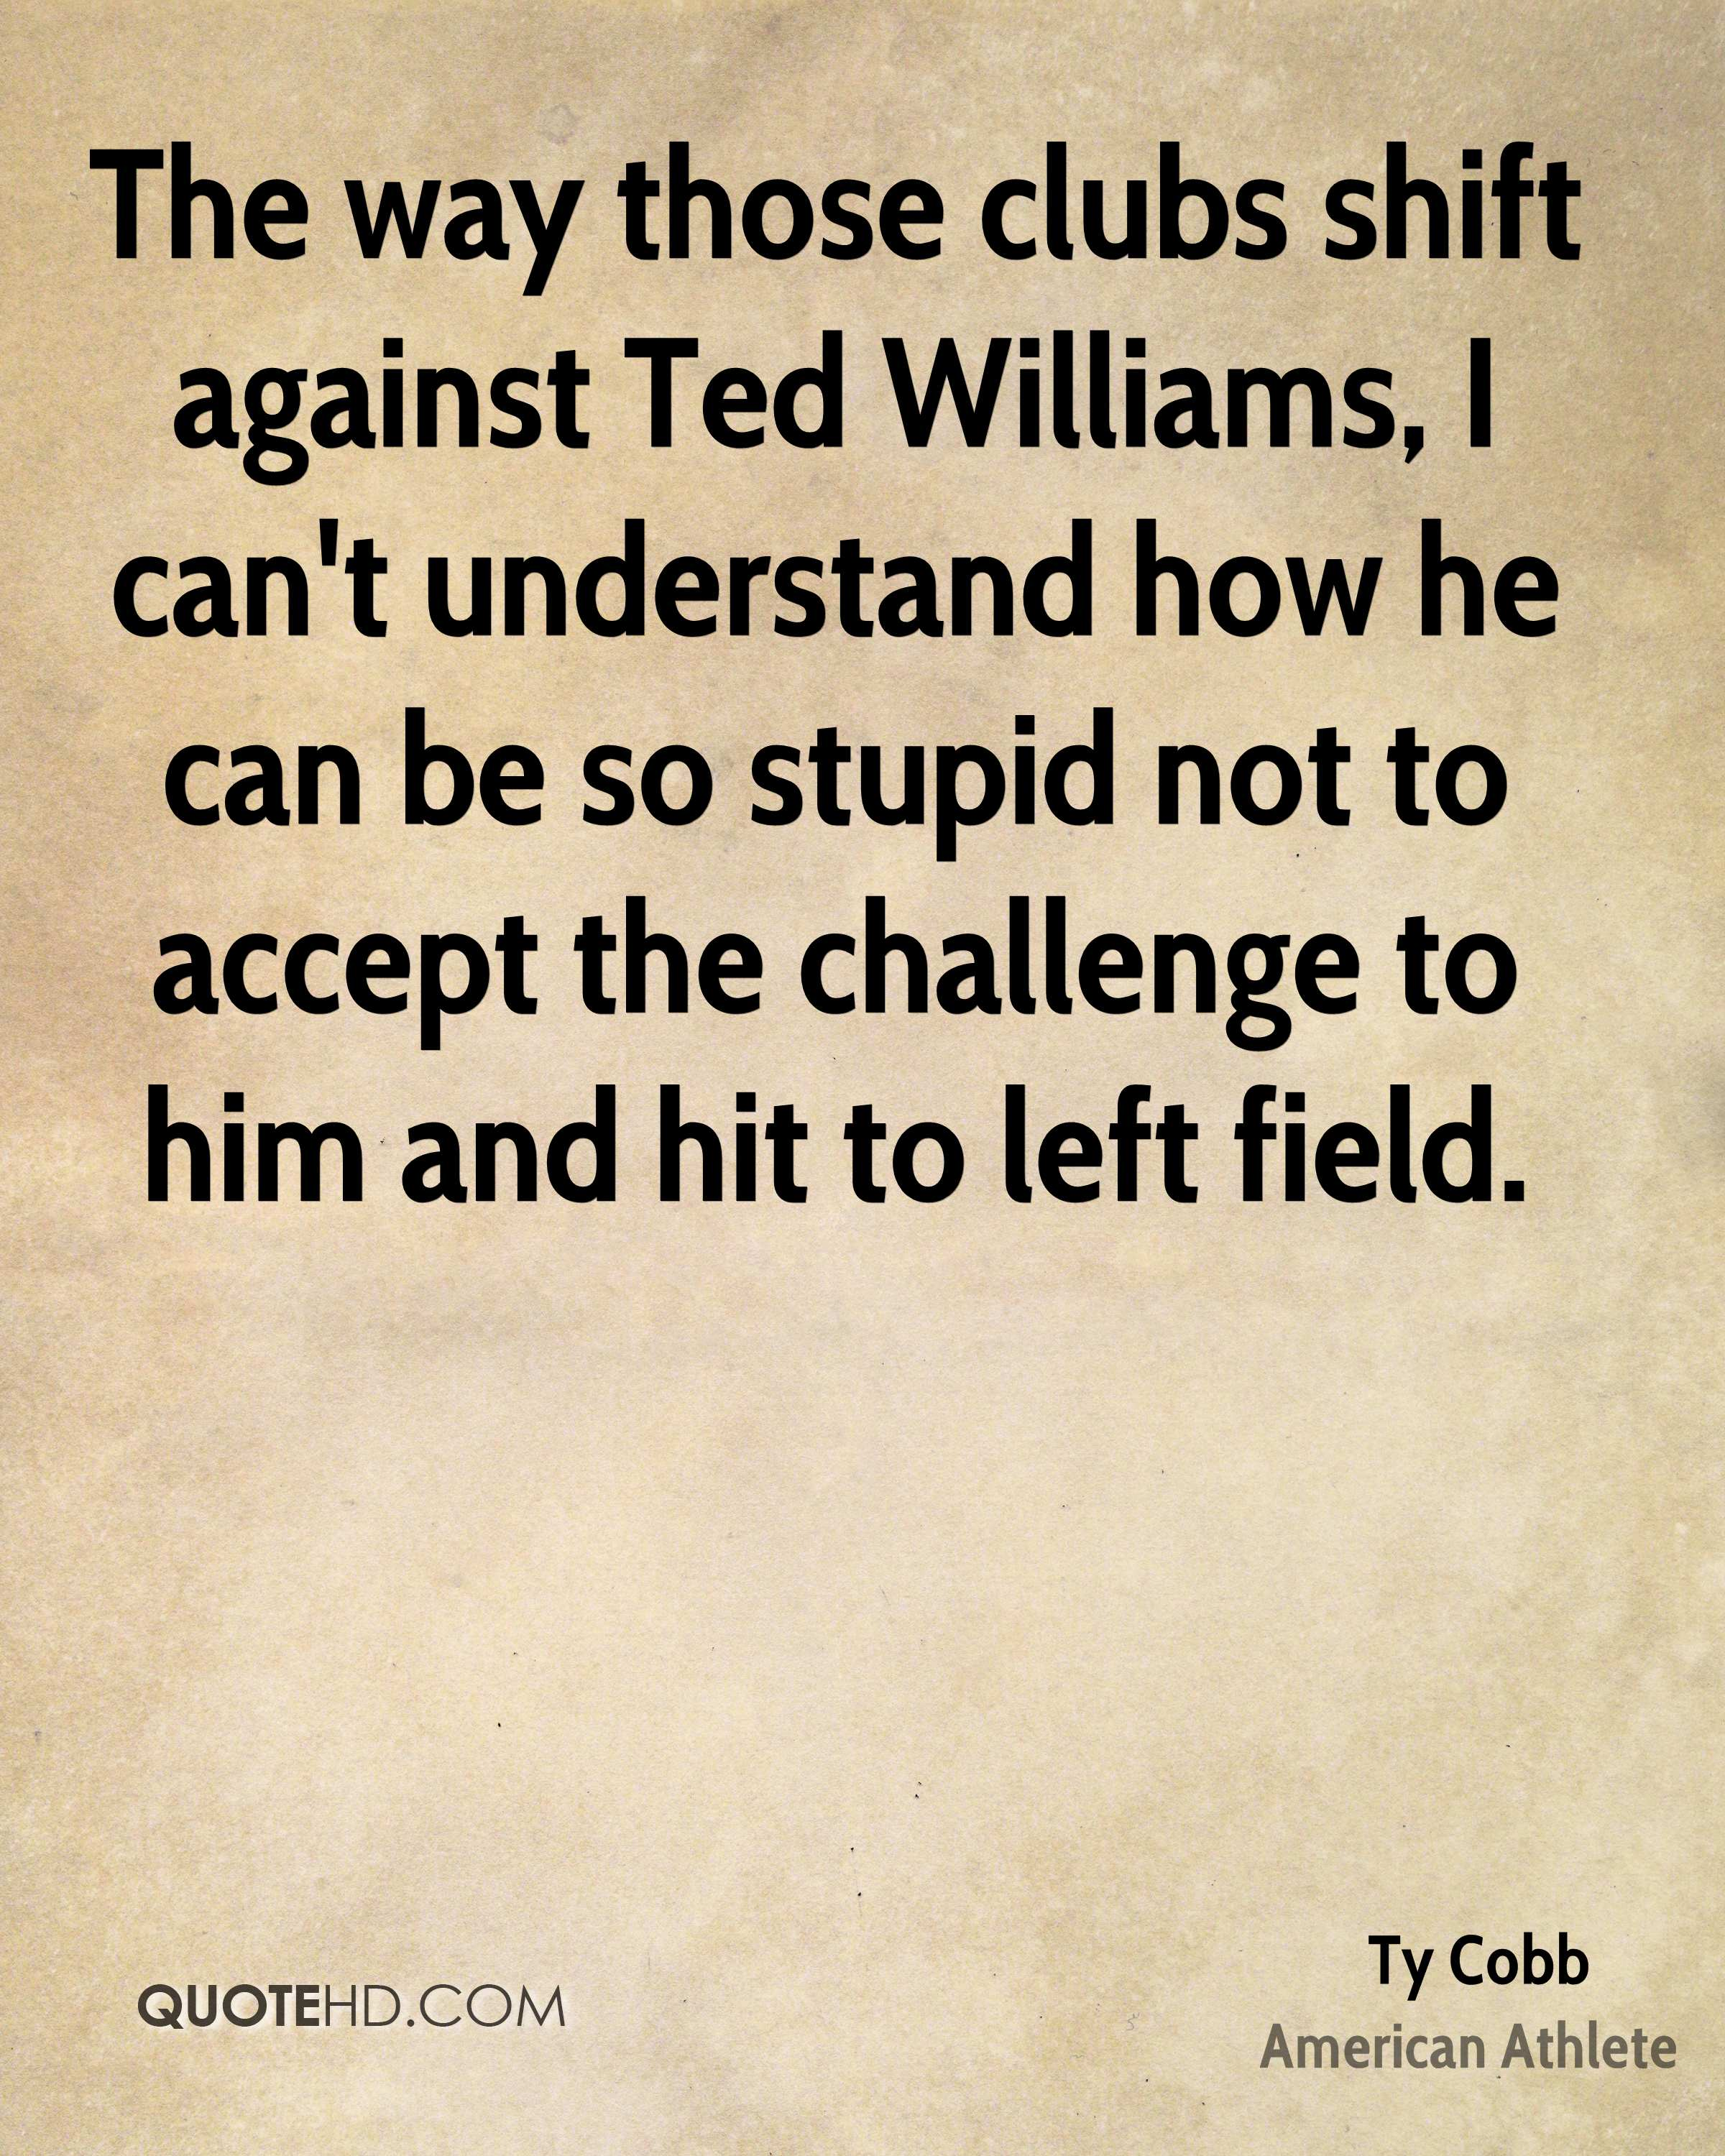 The way those clubs shift against Ted Williams, I can't understand how he can be so stupid not to accept the challenge to him and hit to left field.